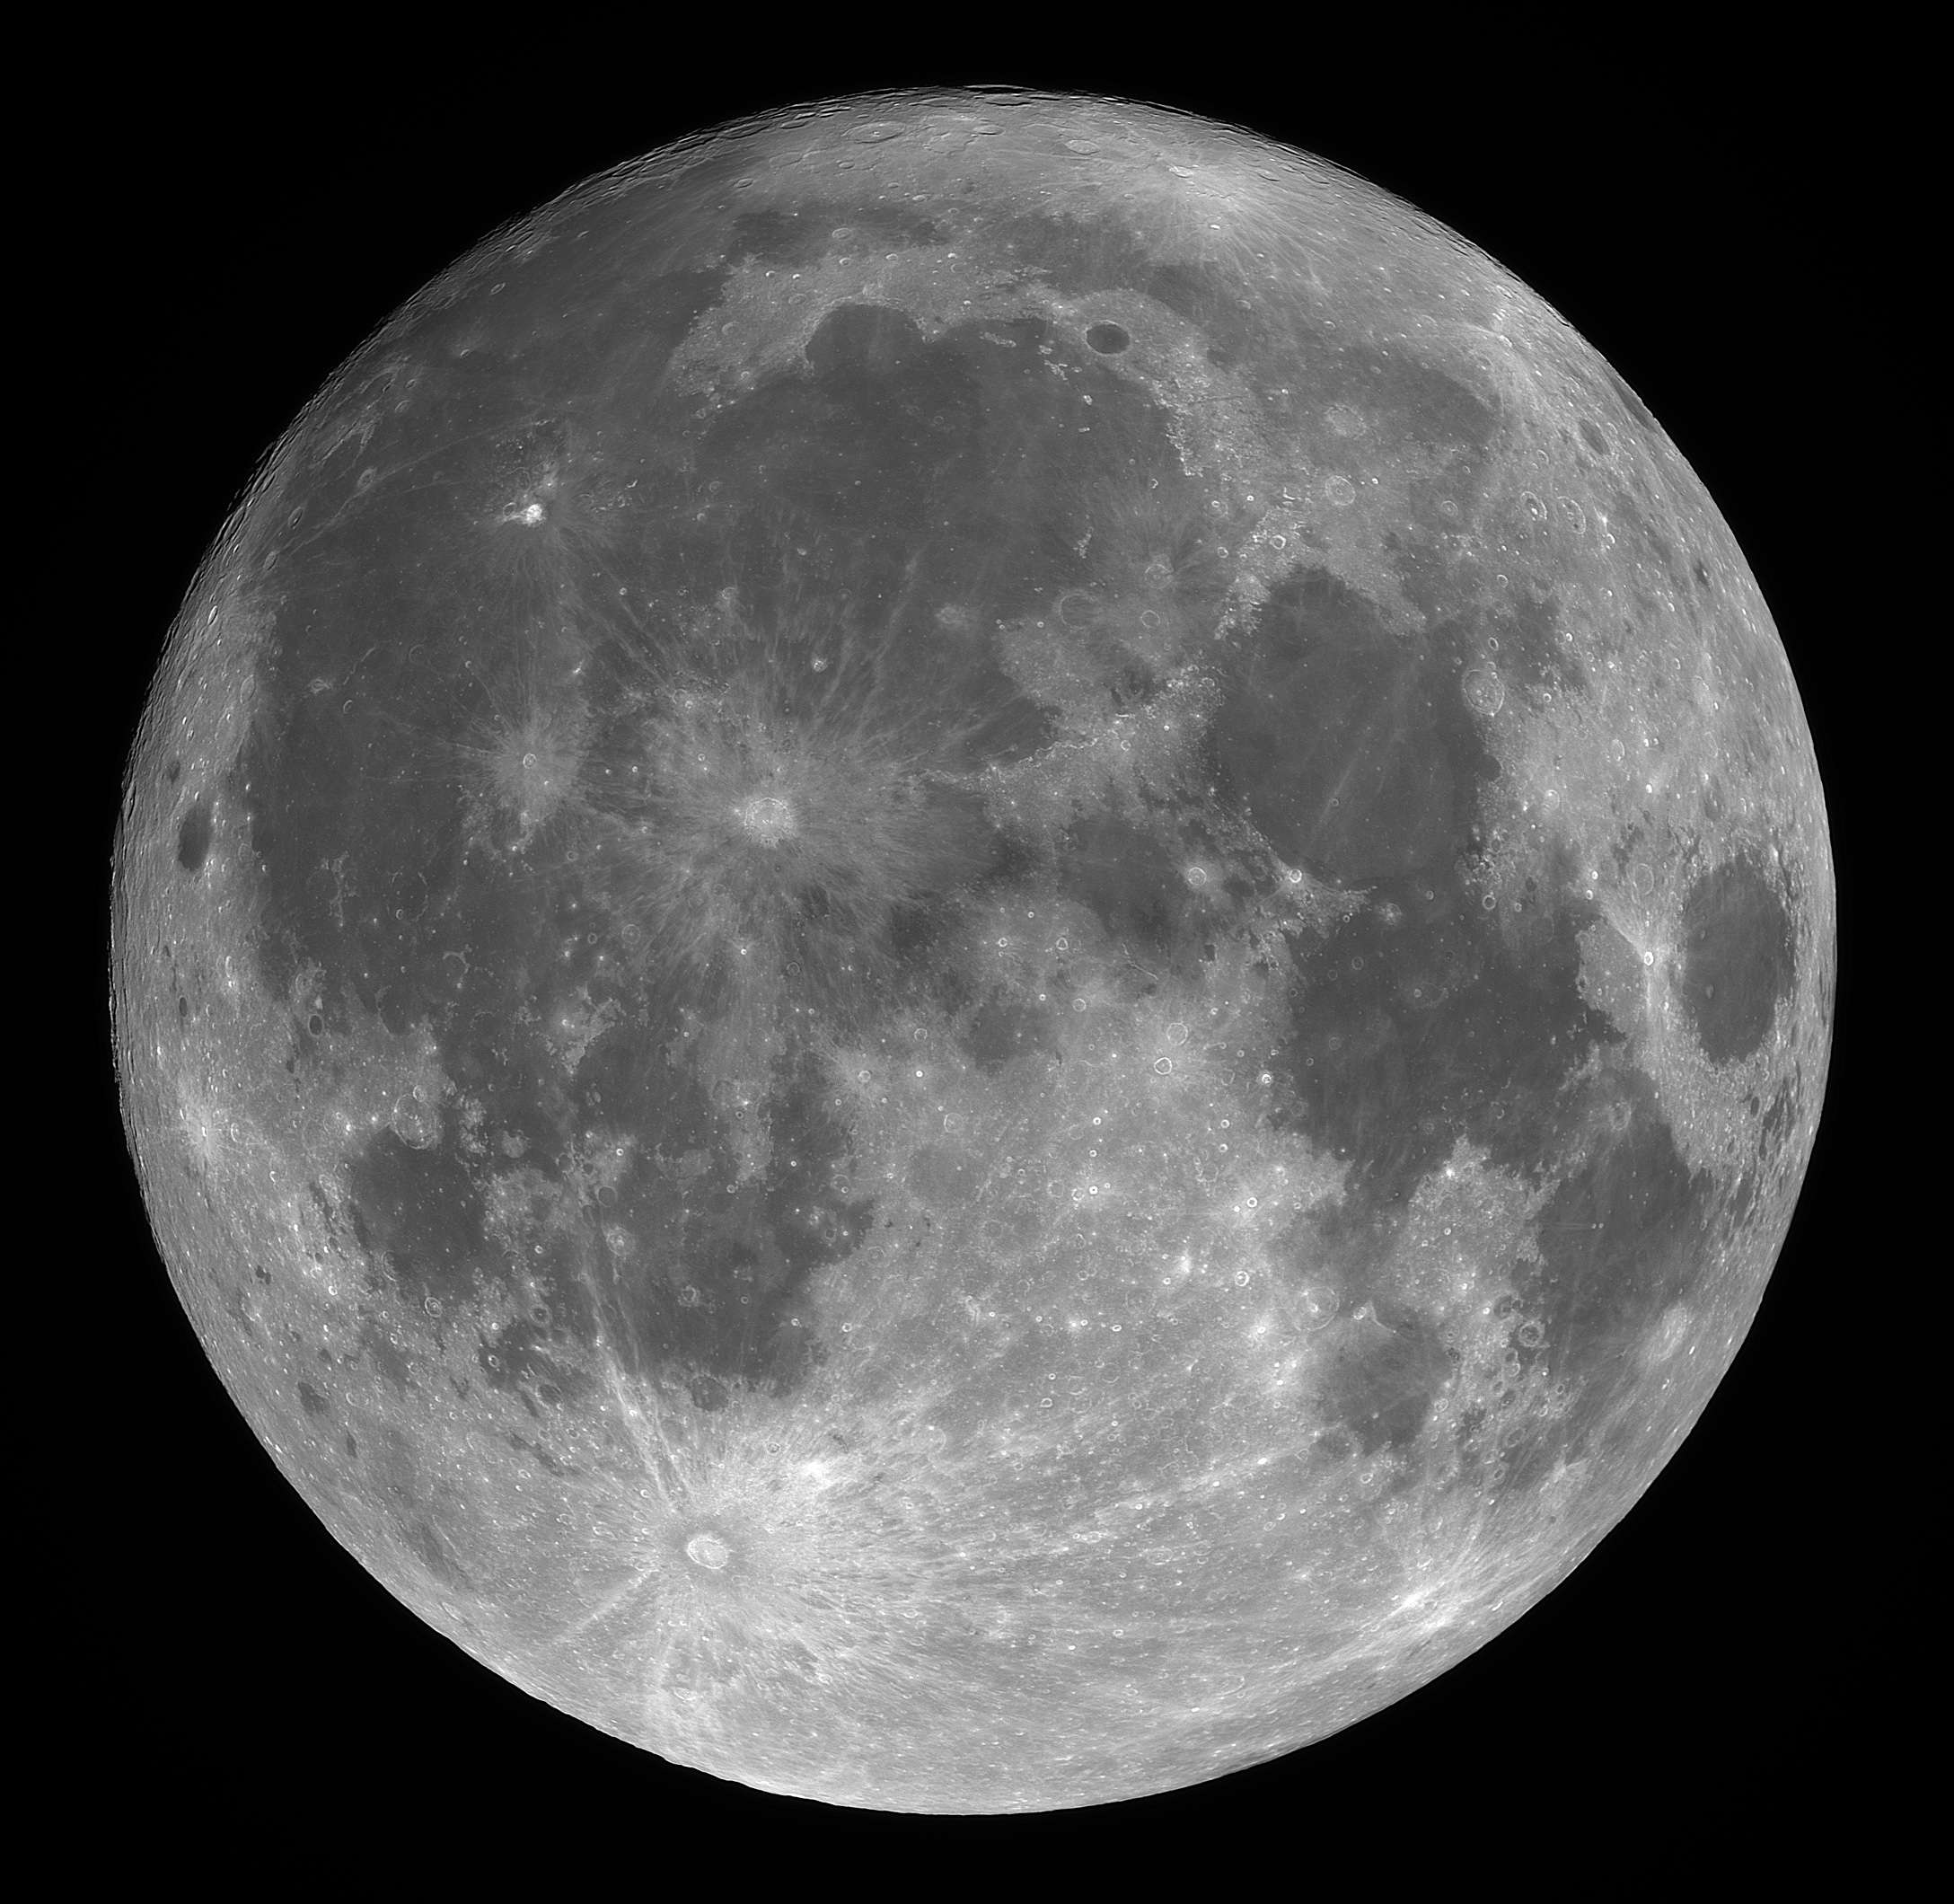 2018-09-24-1541_5-L-Moon_AS_f1000_g4_ap205_ps.jpg